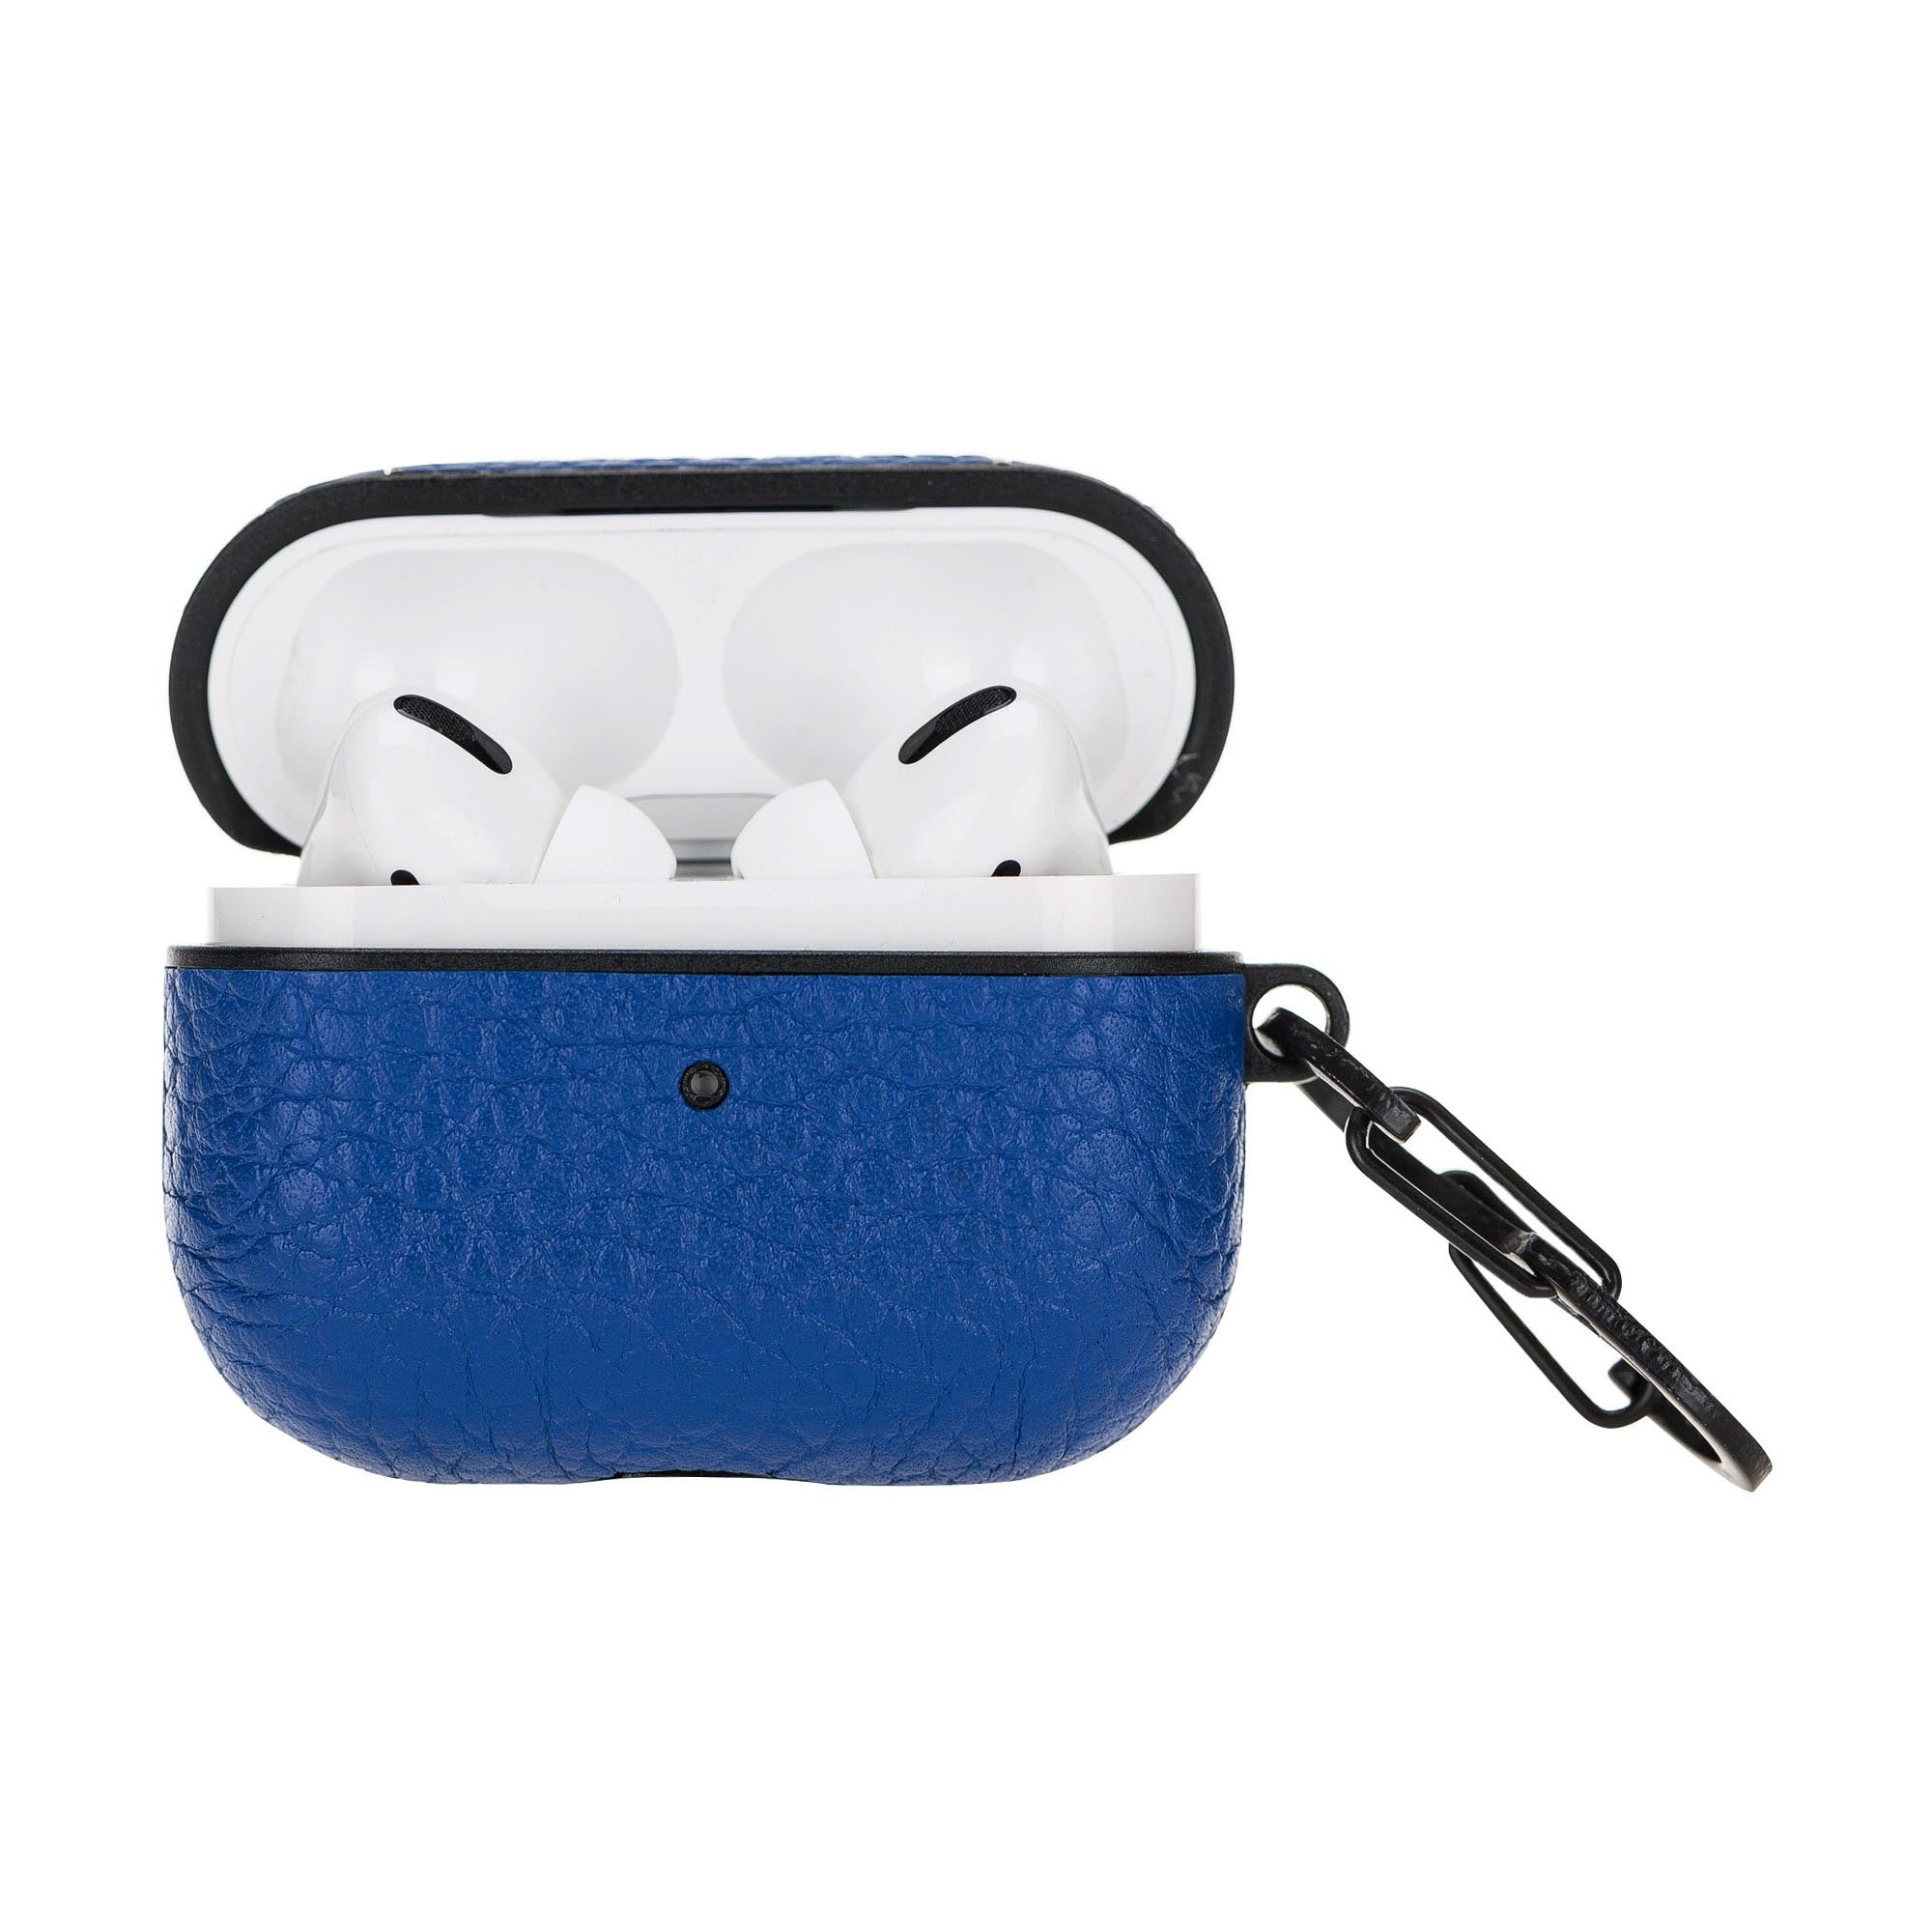 Juni Leather Capsule Case for AirPods Pro - BLUE - saracleather